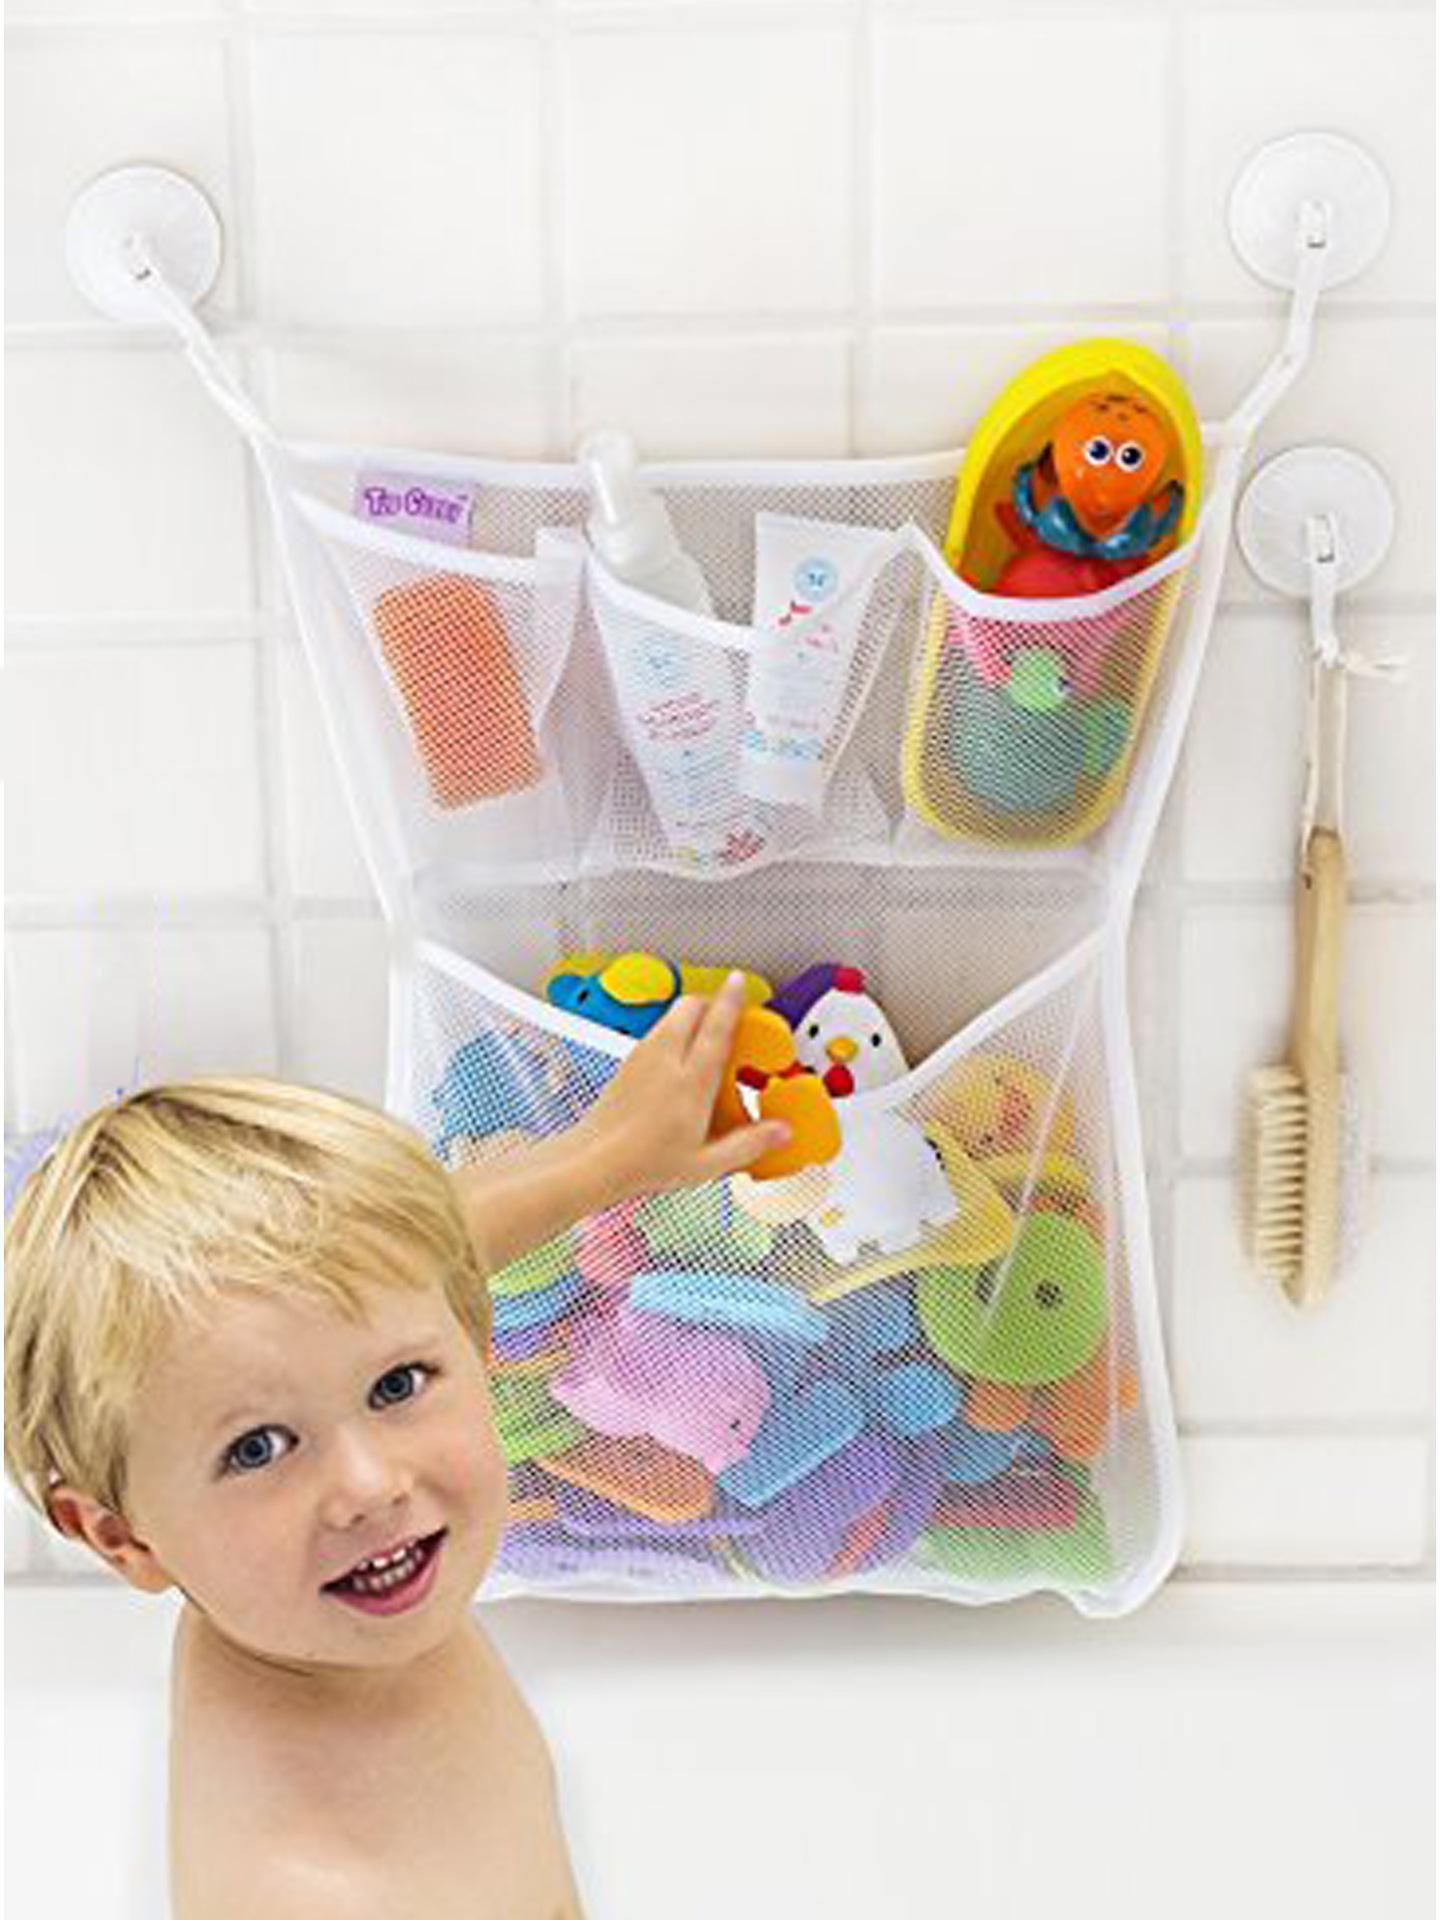 Baby Bath Bathtub Toy Mesh Net Storage Bag Organizer Holder Bathroom White Baby Bath Toys